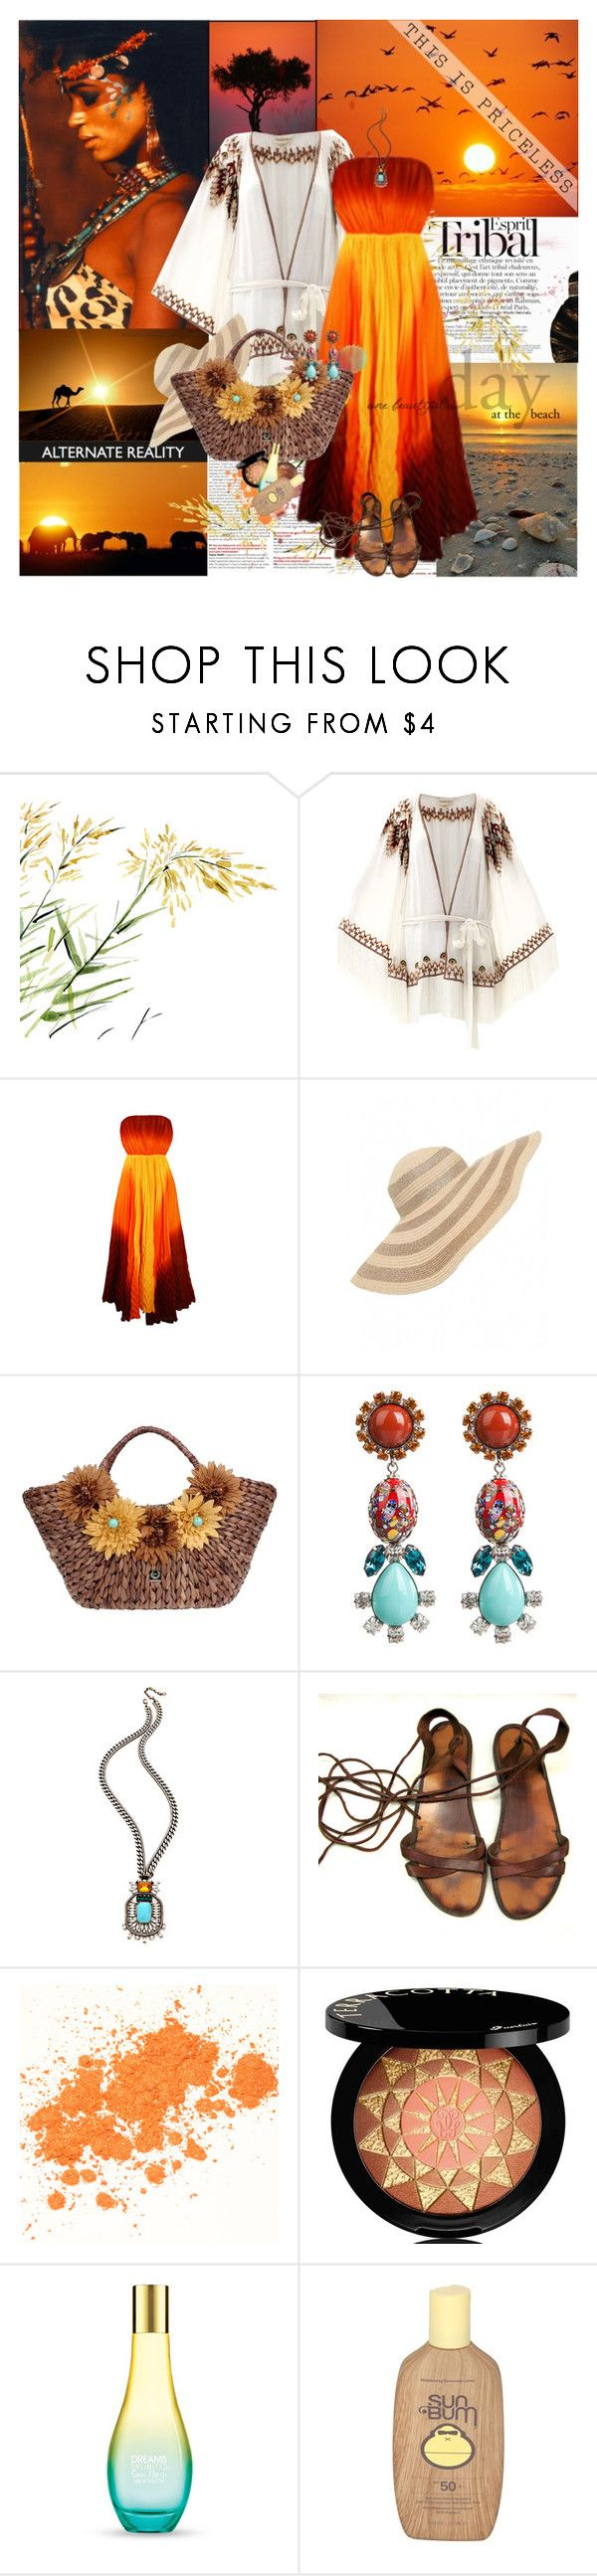 """""""Esprit Tribal"""" by lusy-lusy ❤ liked on Polyvore featuring ESPRIT, MARA, National Geographic Home, Talitha, Alice + Olivia, Helene Berman, GIANMARCO VENTURI, DANNIJO, Guerlain and The Body Shop"""